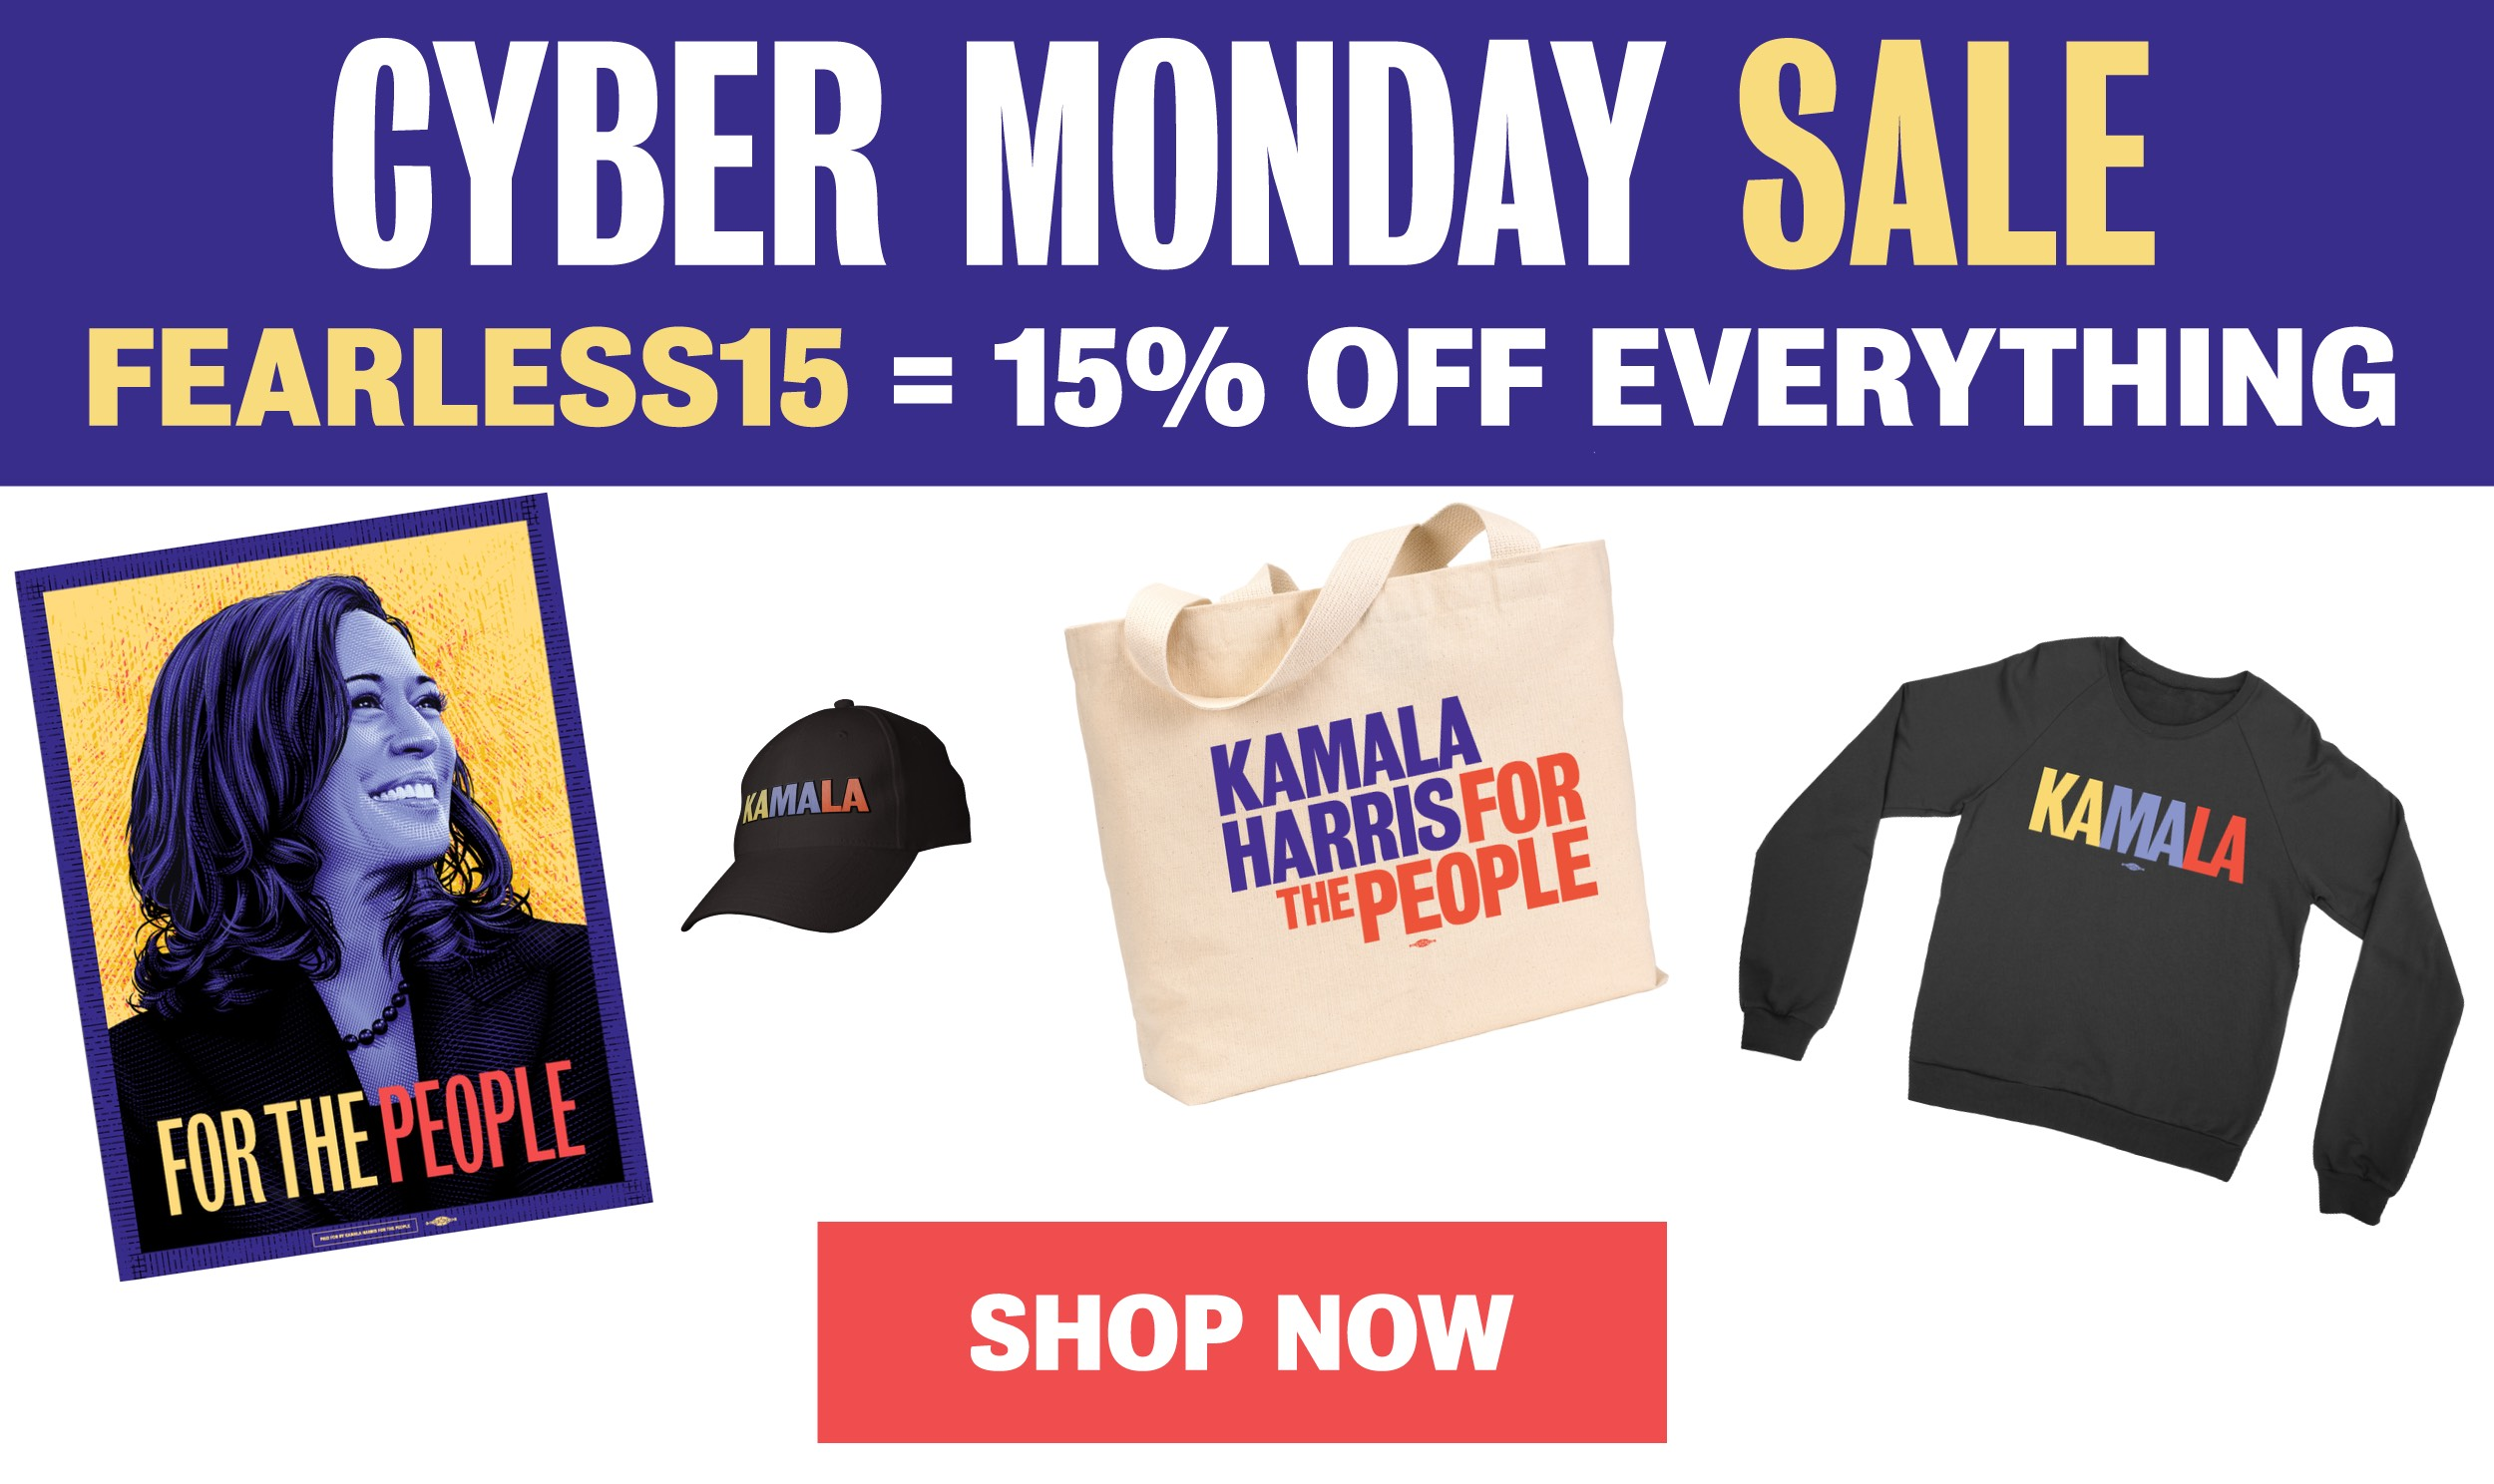 Cyber Monday Sale! Use the code FEARLESS15 to get 15% off everything. Shop now!